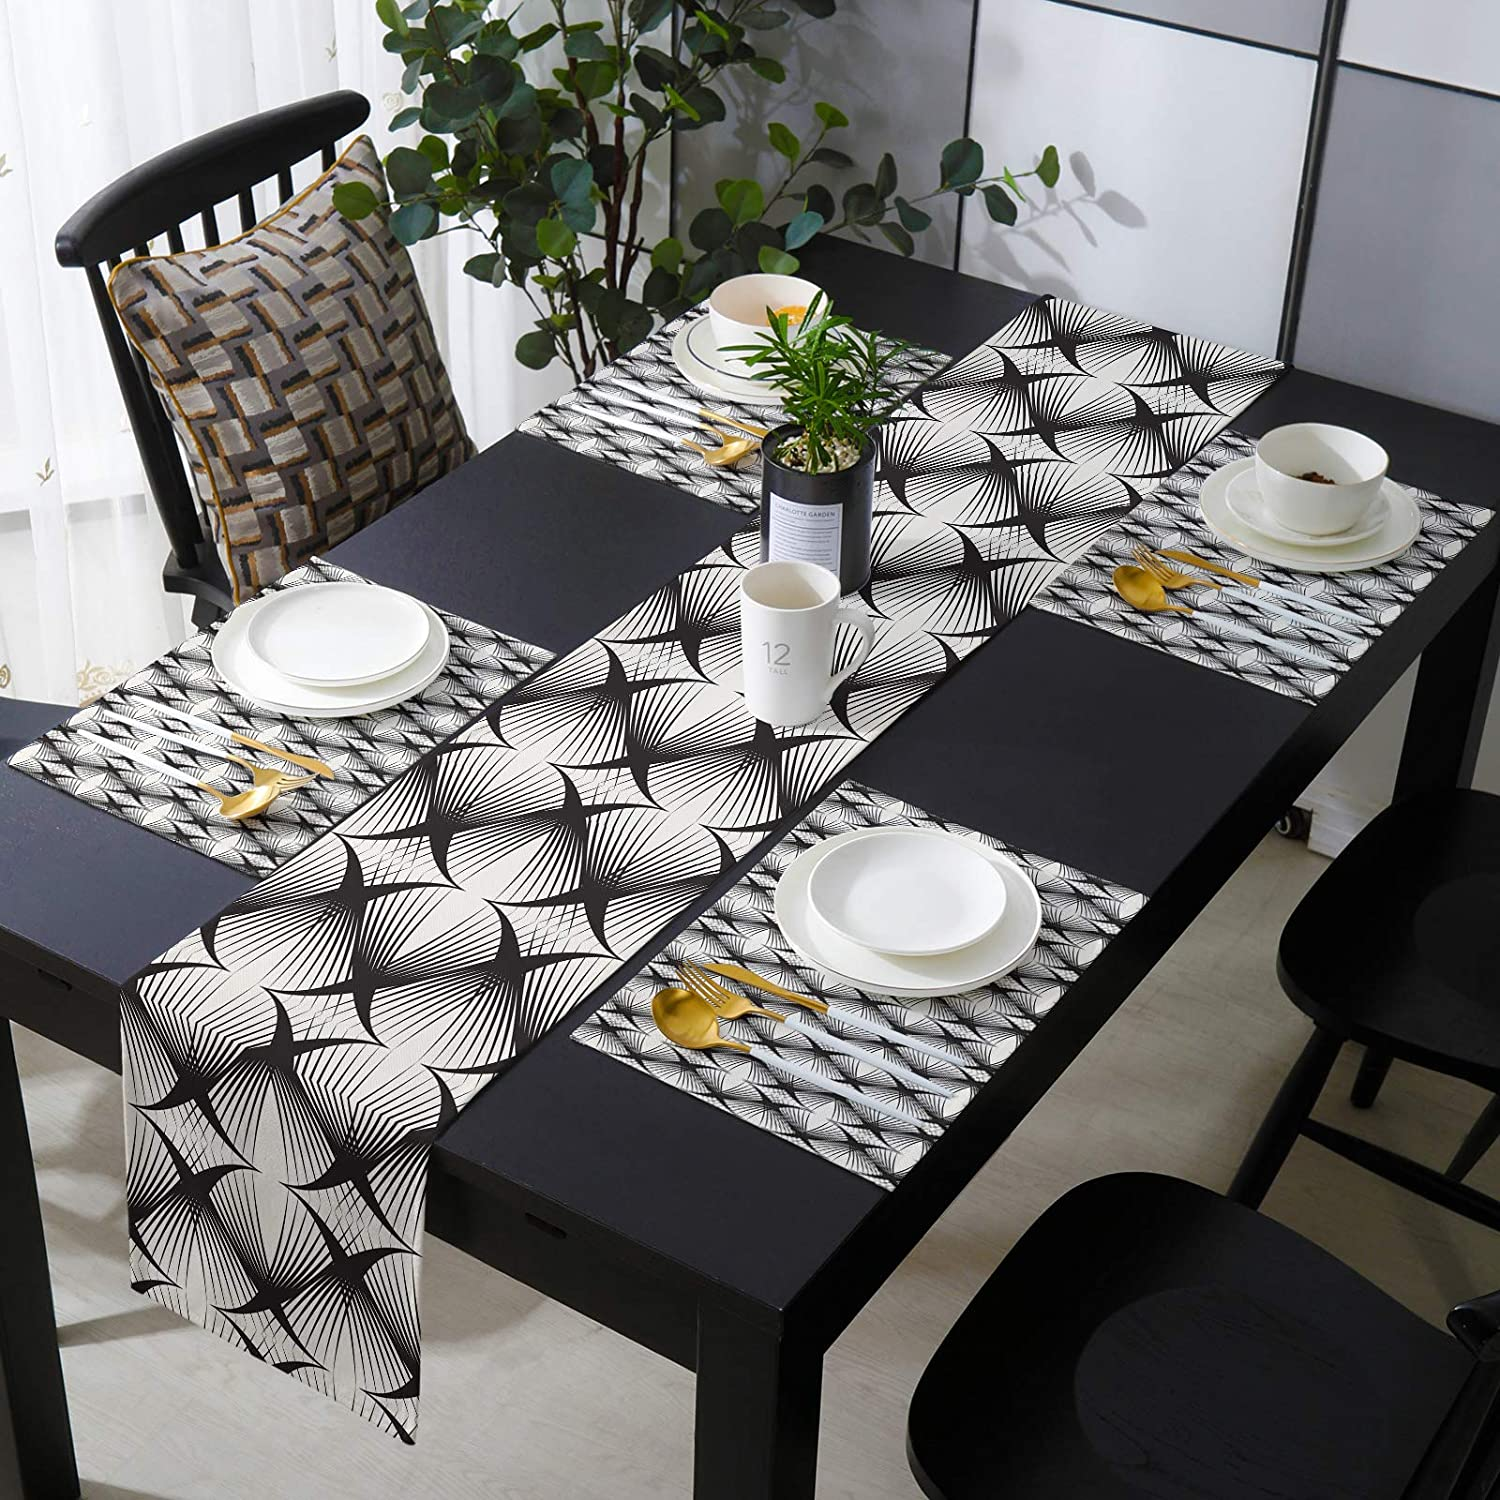 SIGOUYI Modern Table Decor Excellence Runner Geom Set Popular popular Placemats with